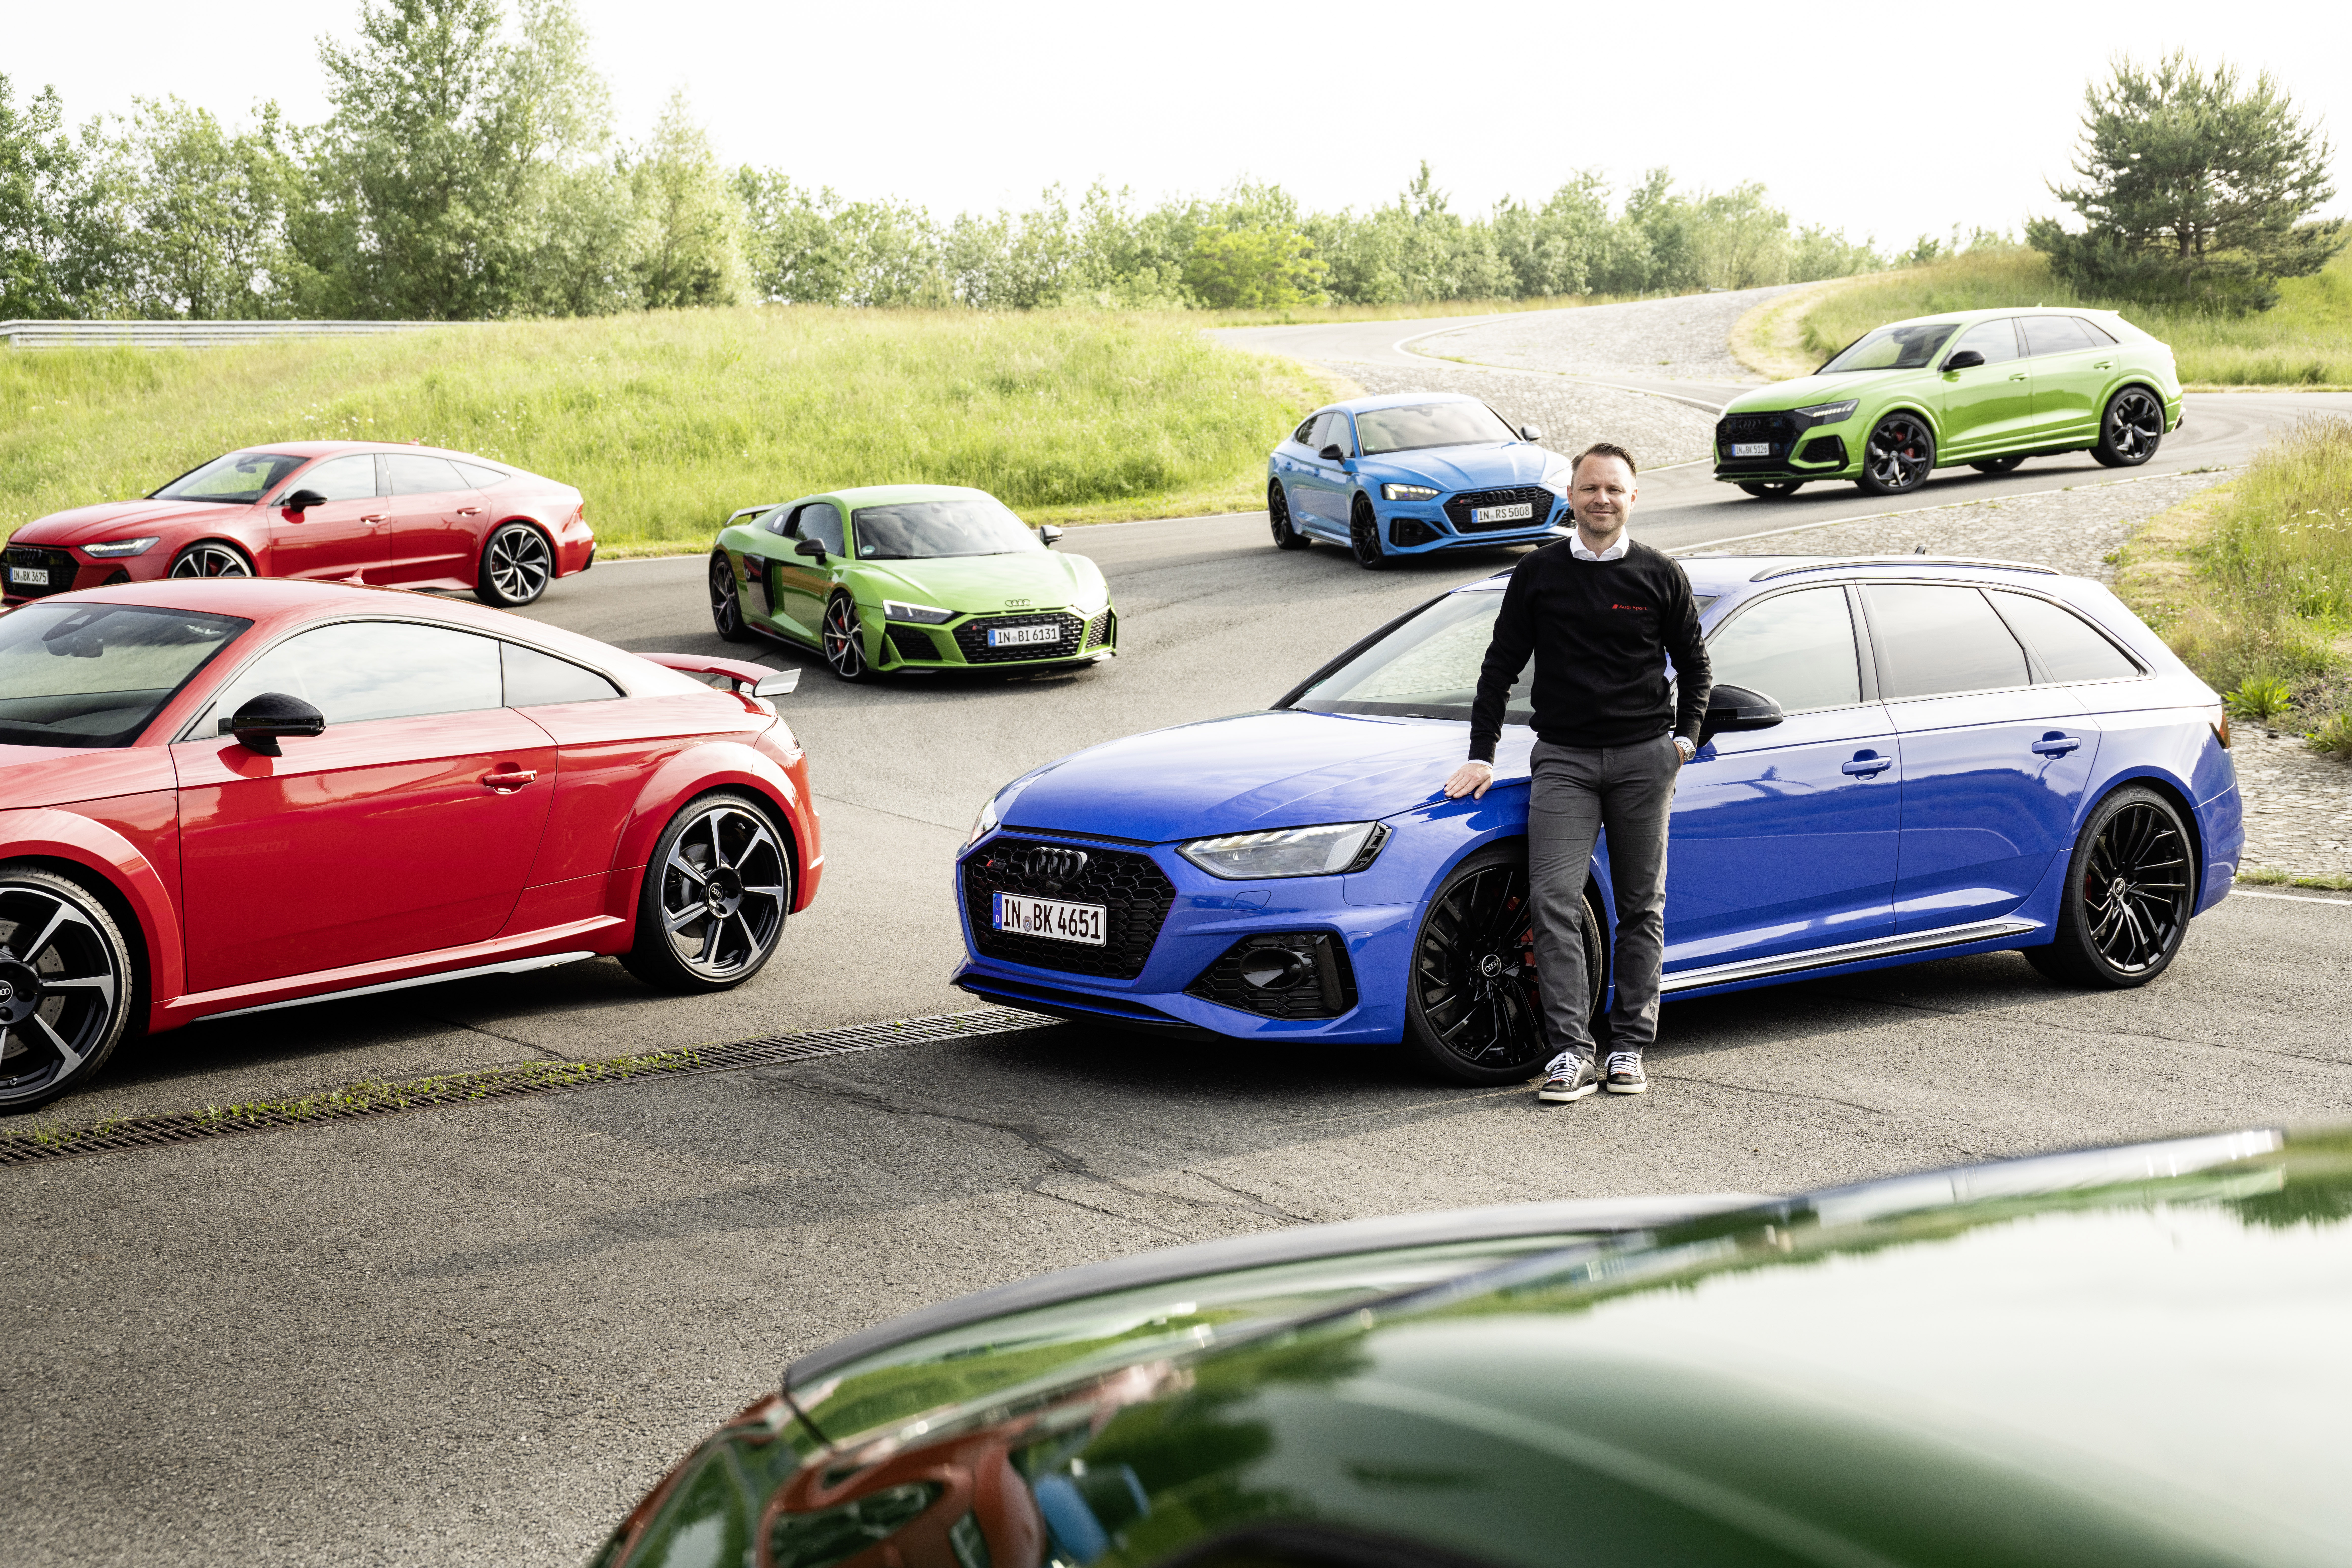 Rolf Michl, head of sales and marketing at Audi Sport